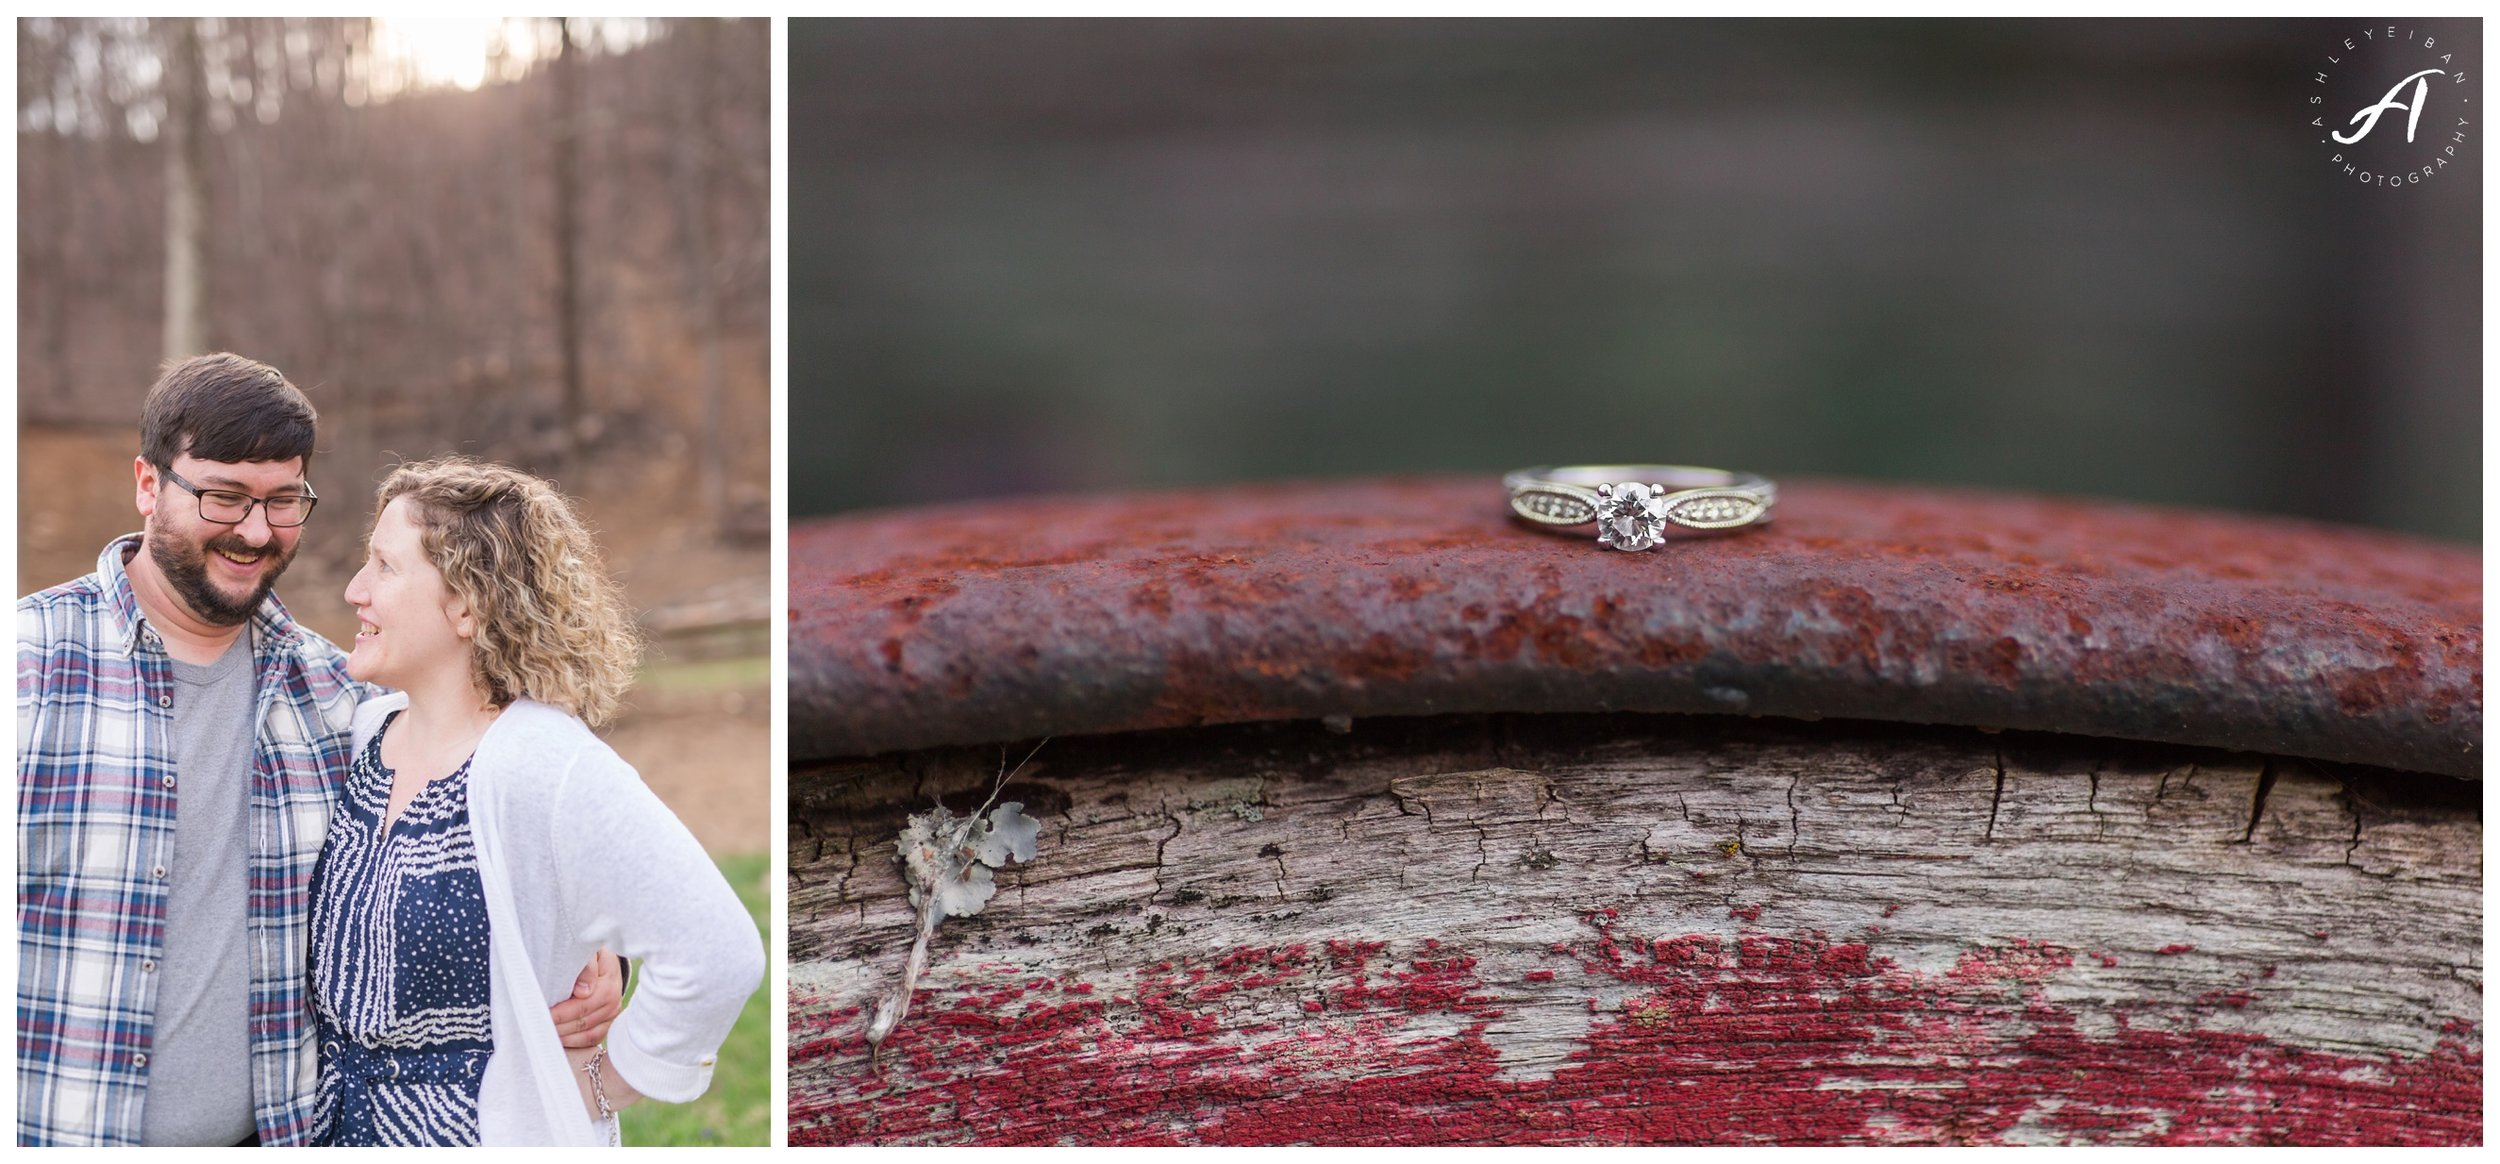 Charlottesville Wedding and engagement photographer || Ashley Eiban Photography || www.ashleyeiban.com